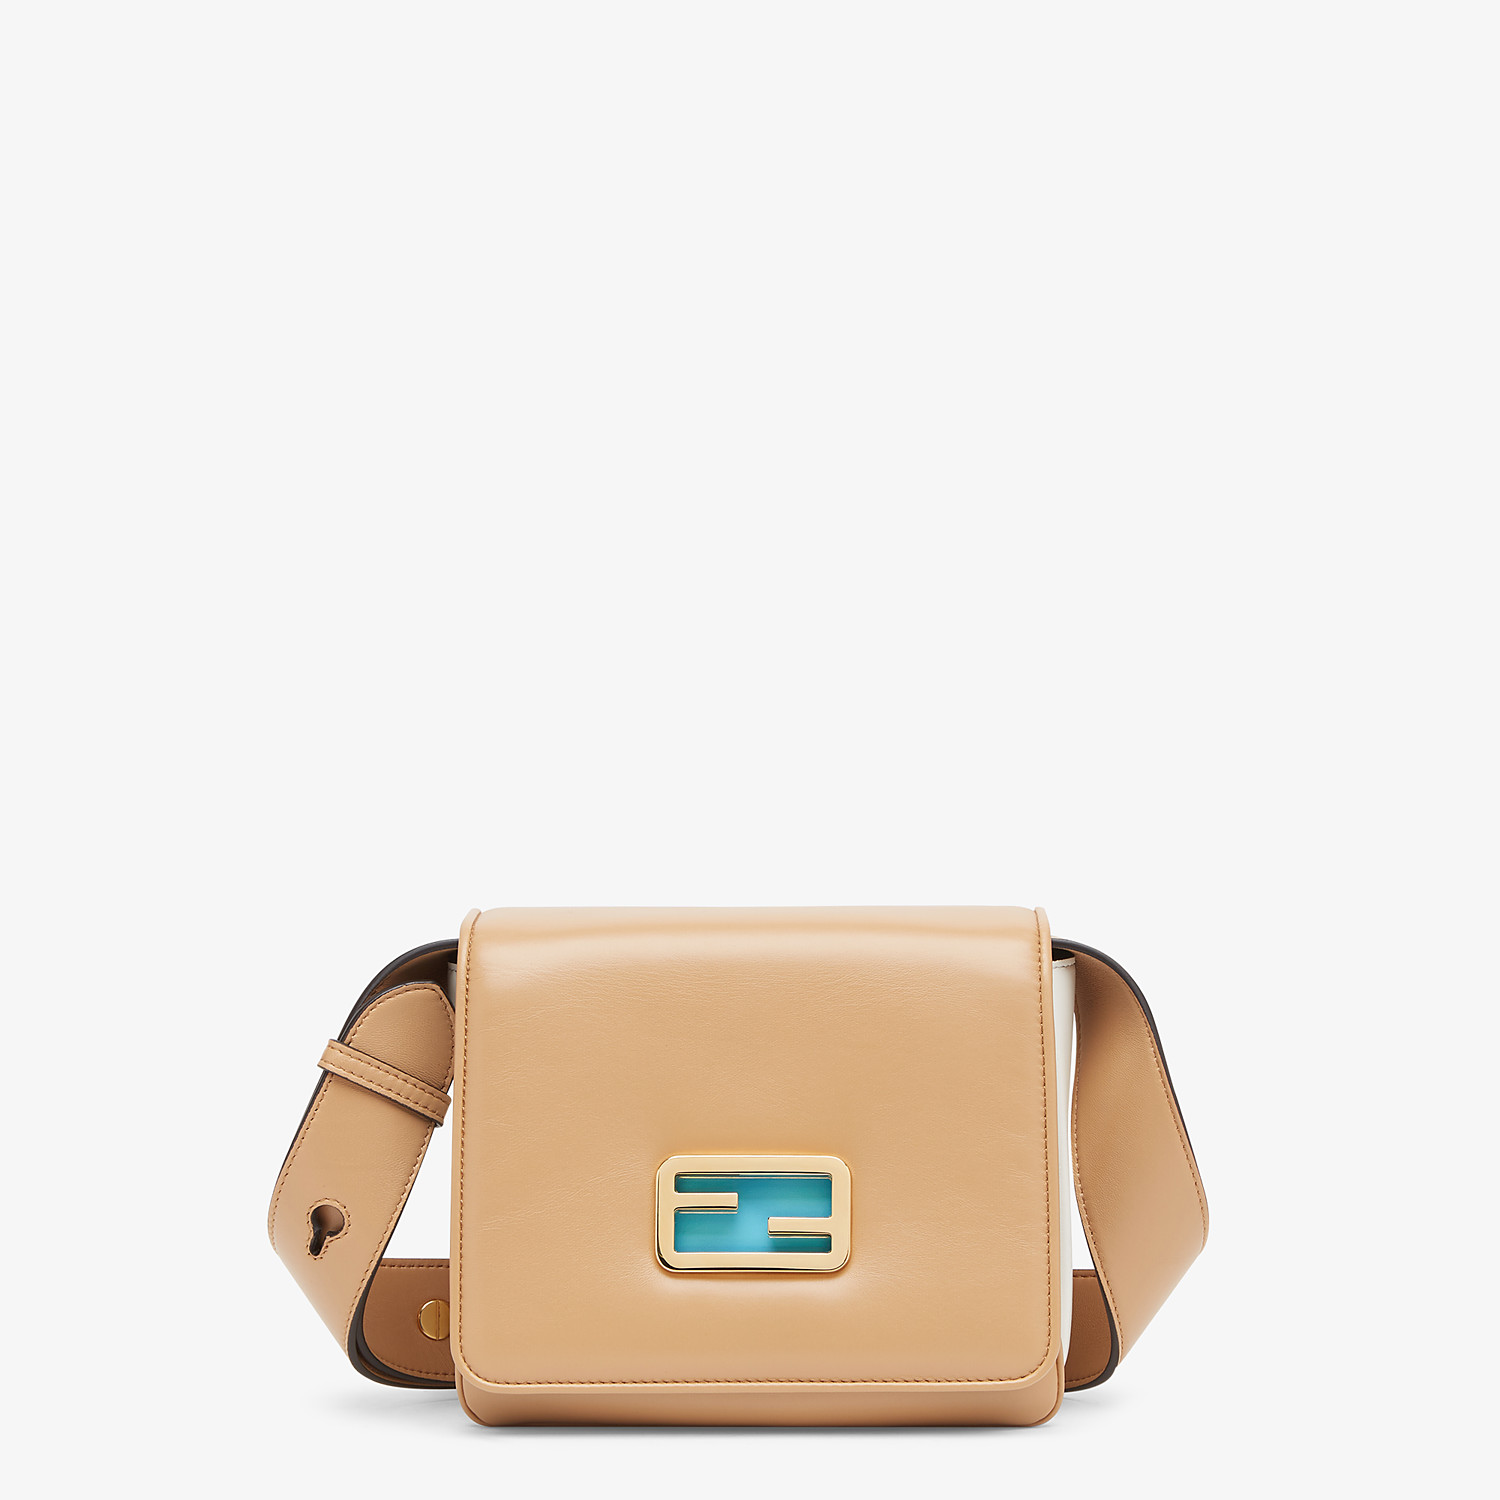 FENDI FENDI ID SMALL - Beige leather bag - view 1 detail